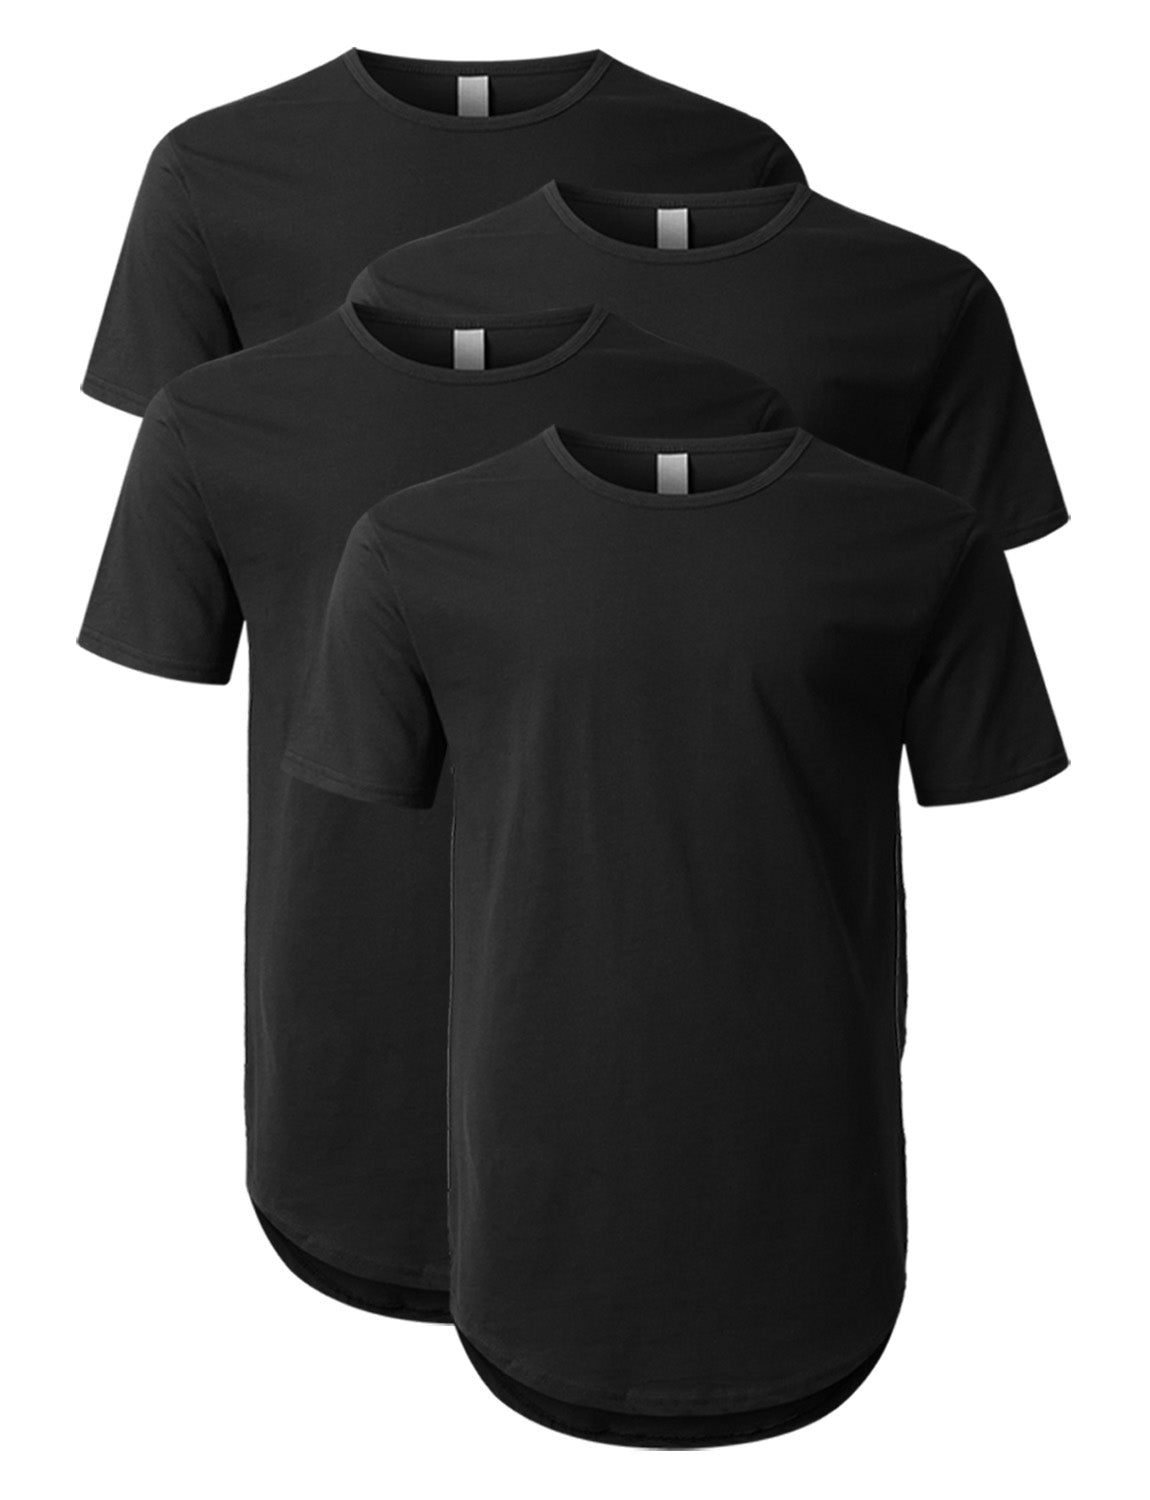 Crewneck Basic T-Shirts 4 Pack Black/Black